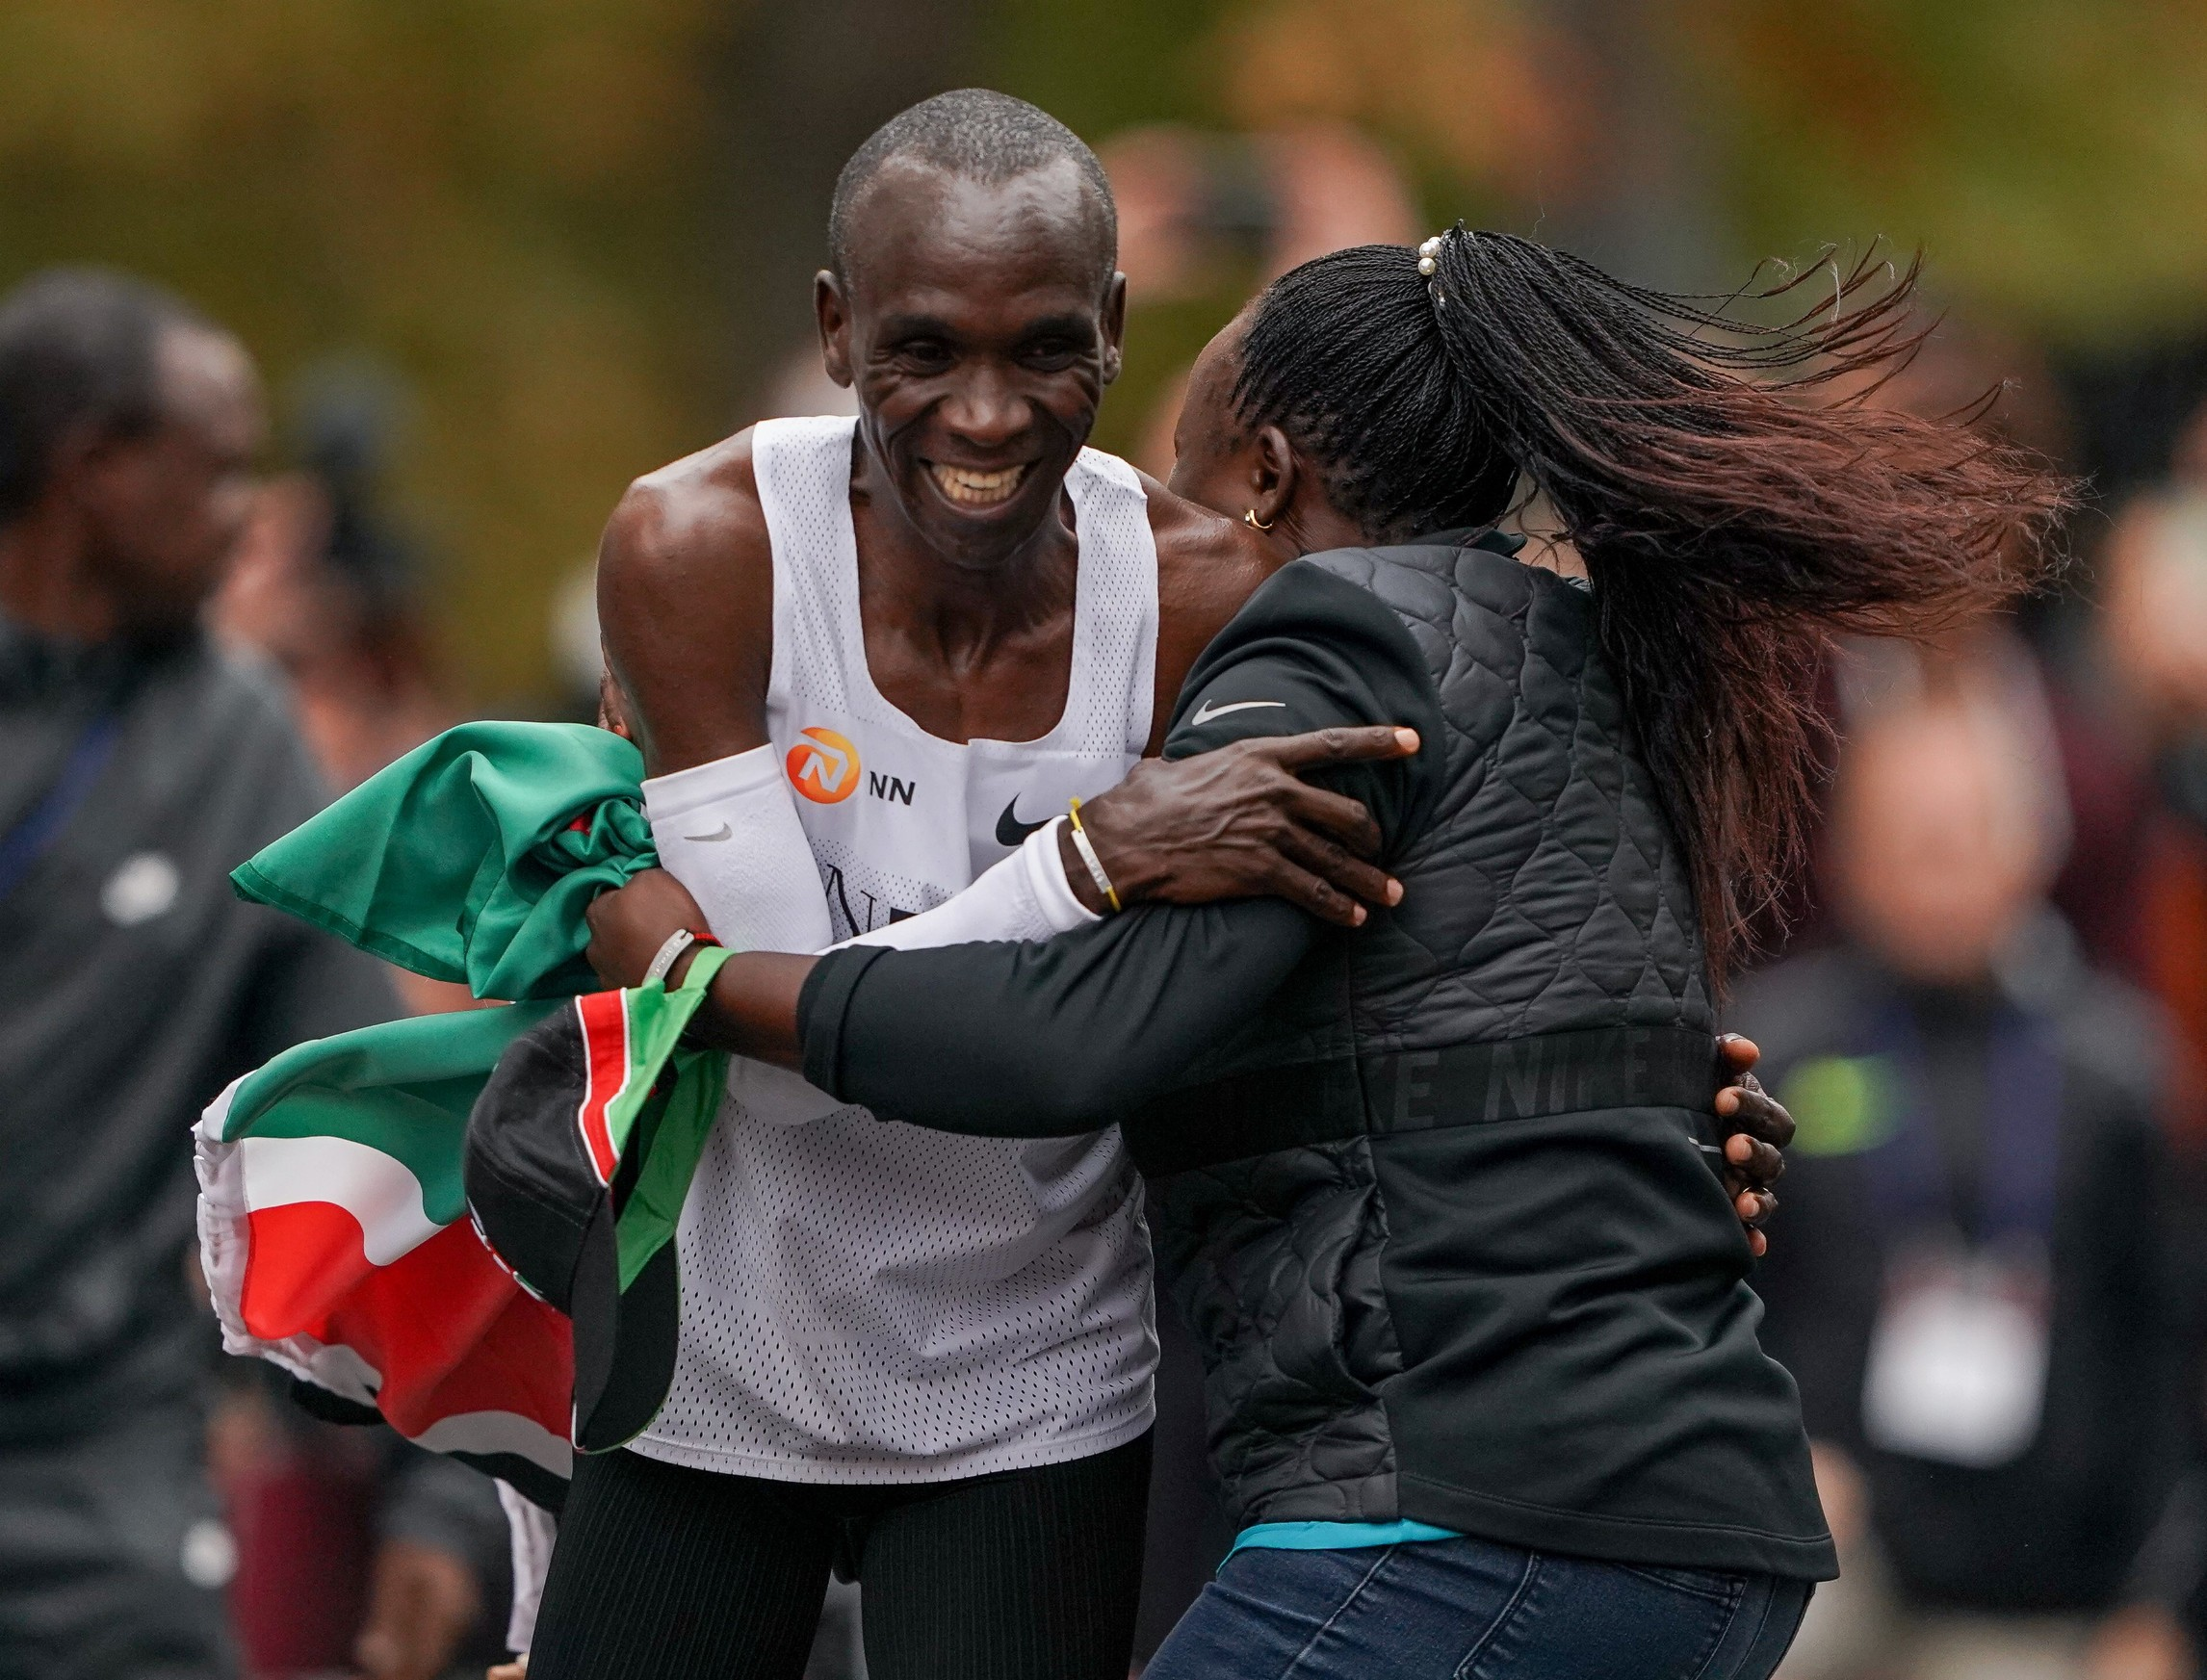 Free for editorial use and archive. Eliud Kipchoge is hugged by his wife Grace Sugutt after he breaks the historic two hour barrier for a marathon. The INEOS 1:59 Challenge, Vienna, Austria. 12 October 2019. Photo: Jed Leicester for The INEOS 1:59 Challenge The INEOS 1:59 Challenge, Image: 476338110, License: Rights-managed, Restrictions: , Model Release: no, Credit line: REX / Shutterstock Editorial / Profimedia